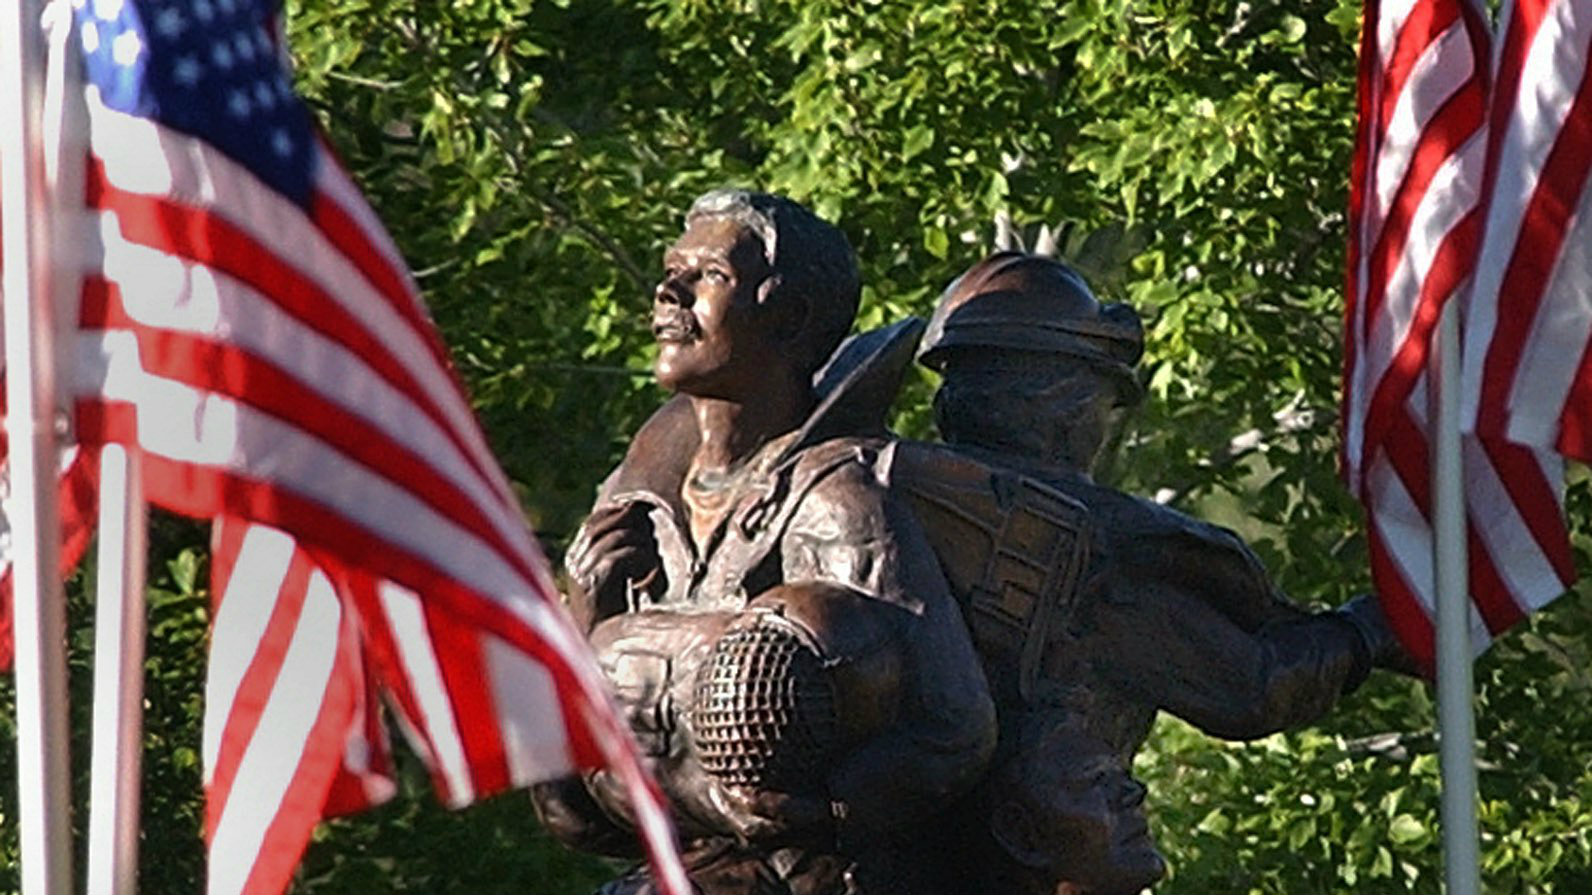 <p>The morning sun highlights a monument in Glenwood Springs, Colo., on Tuesday, July 6, 2004, dedicated to the 14 firefighters who died while fighting a wildfire on nearby Storm King Mountain. </p>